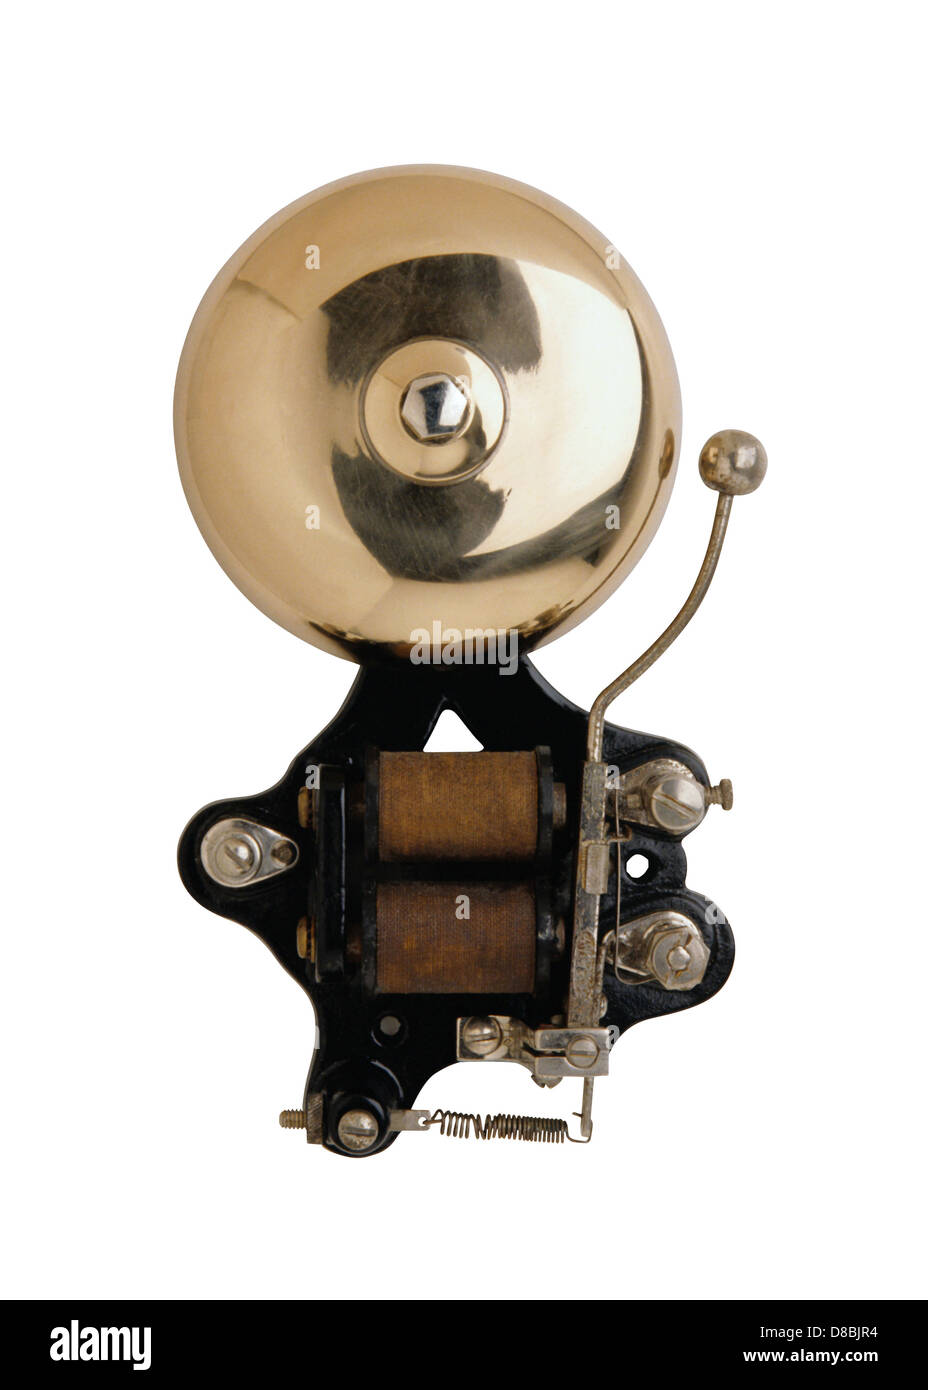 Antique doorbell - Antique Doorbell Stock Photos & Antique Doorbell Stock Images - Alamy